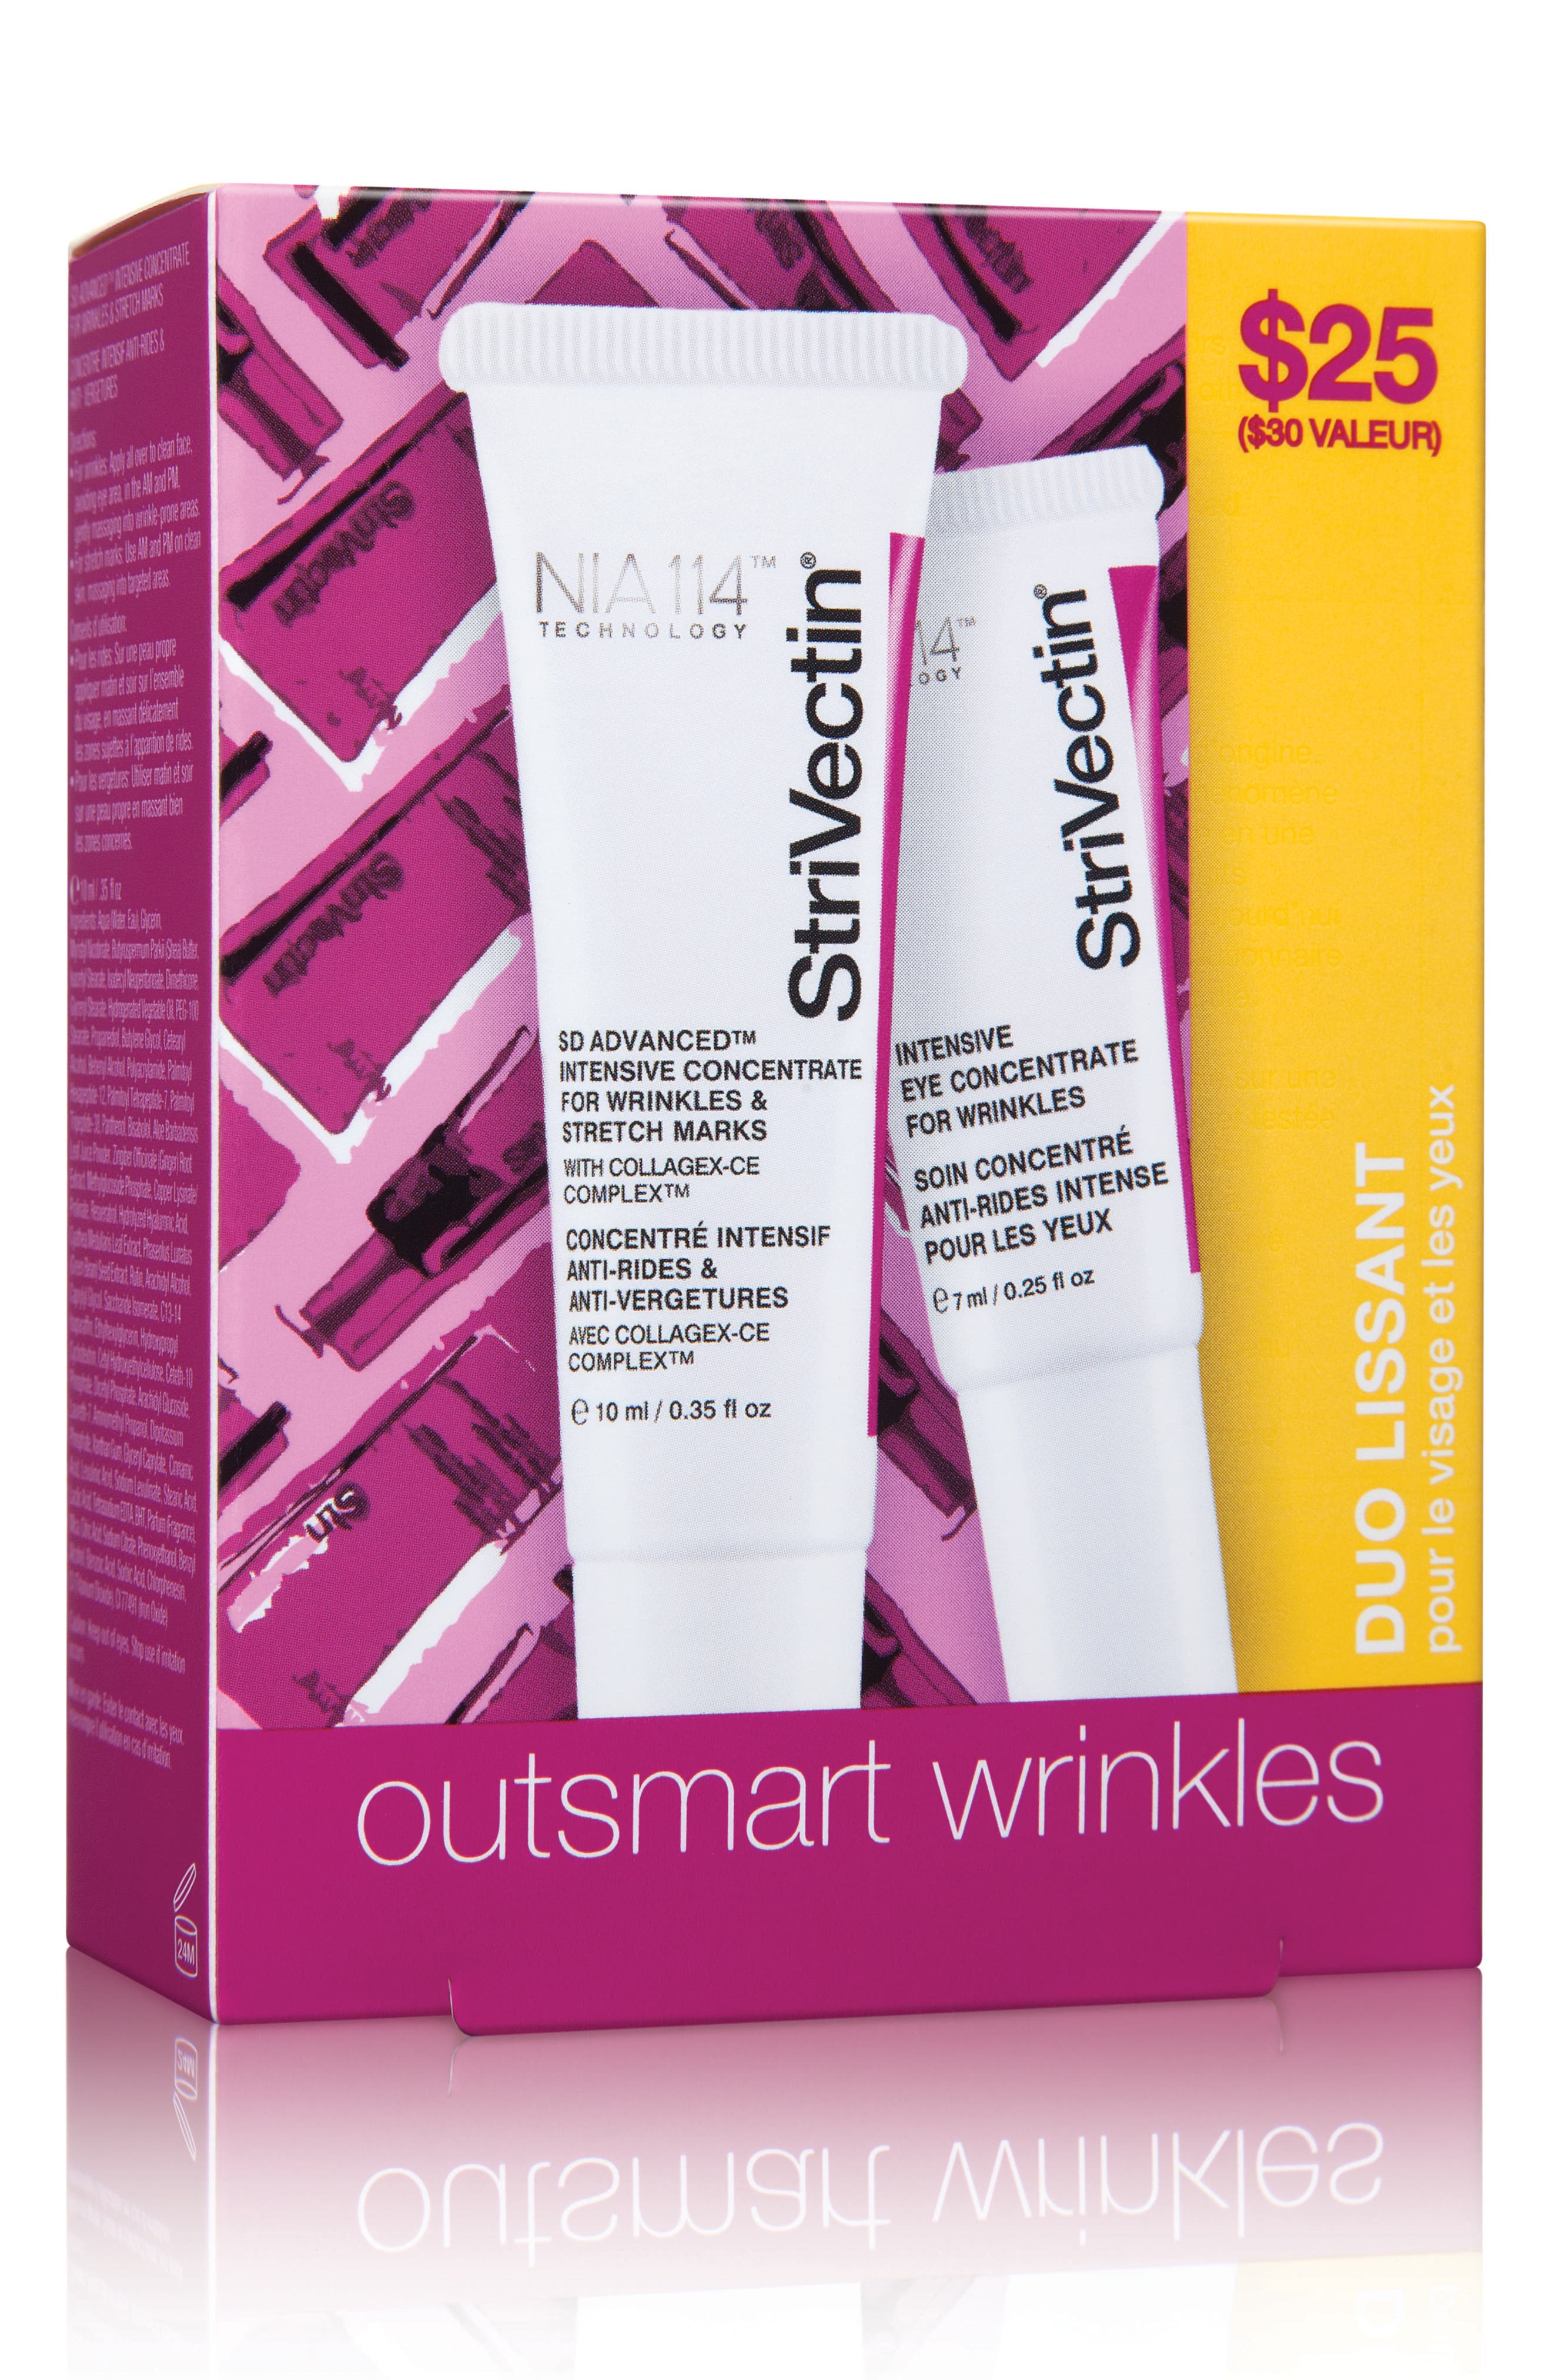 StriVectin® Smoothing Duo for Face & Eyes ($30 Value)